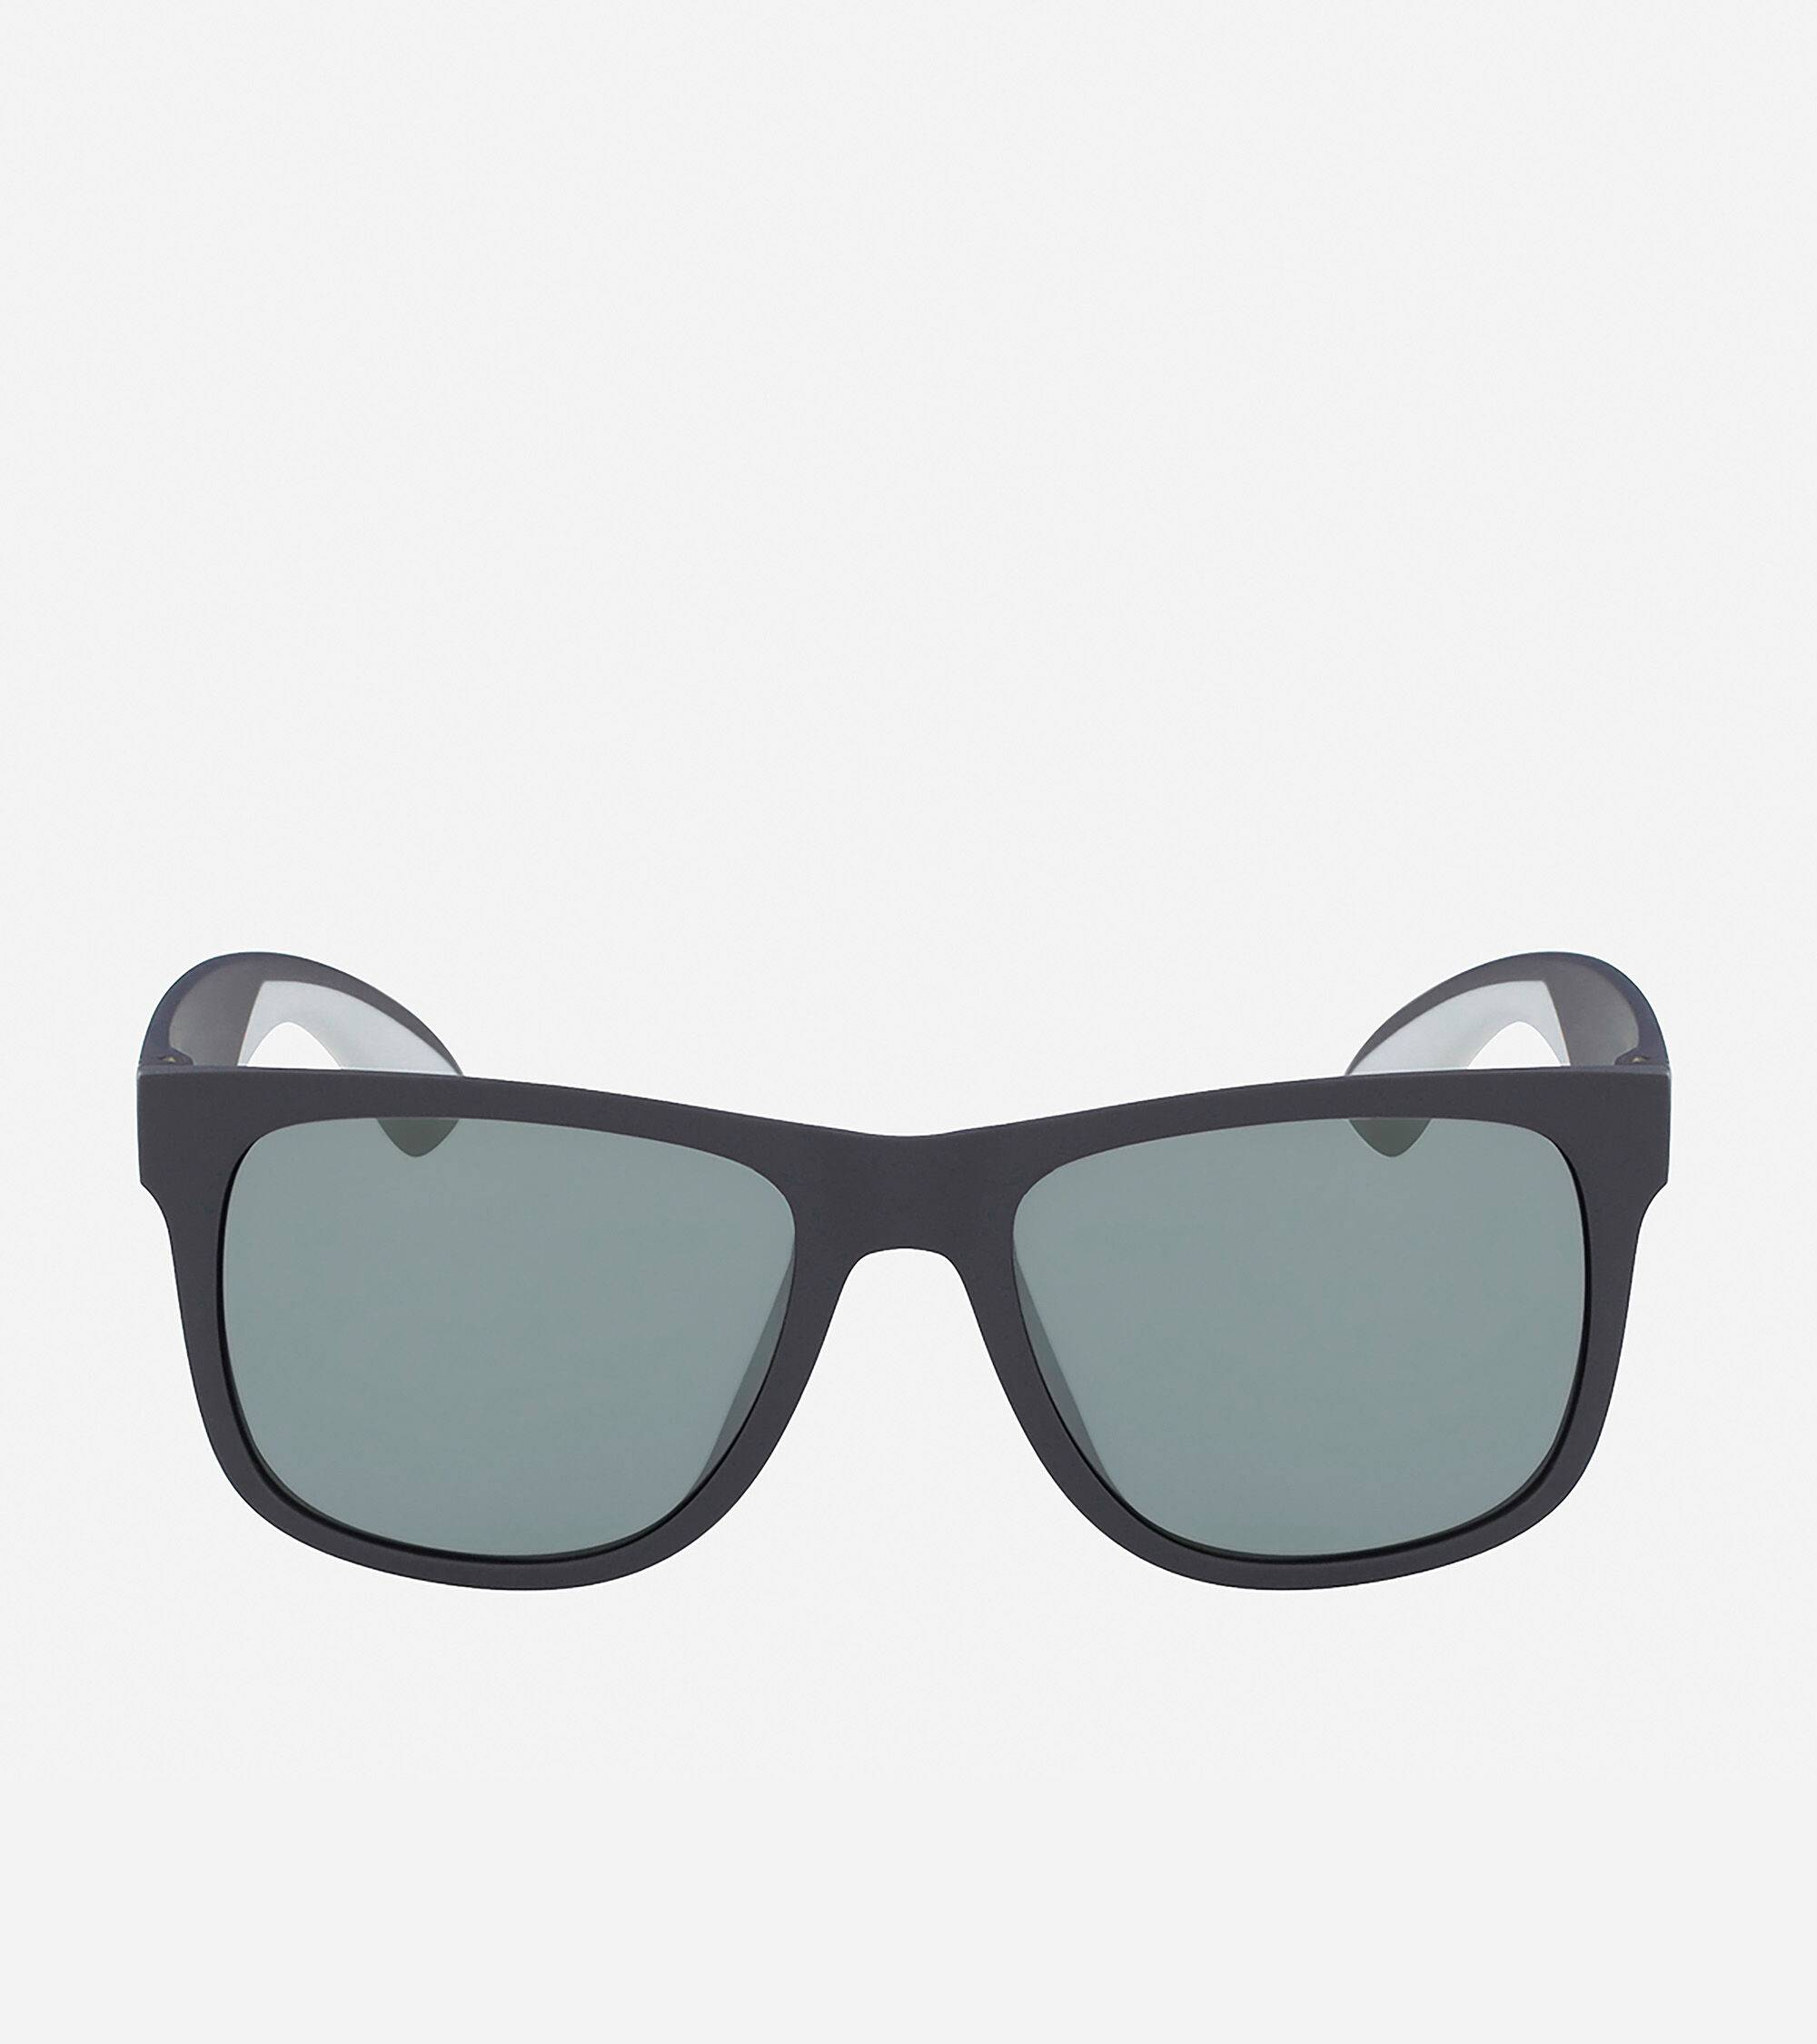 Cole Haan Sport Rectangle Sunglasses - Gray - Size: OSFA